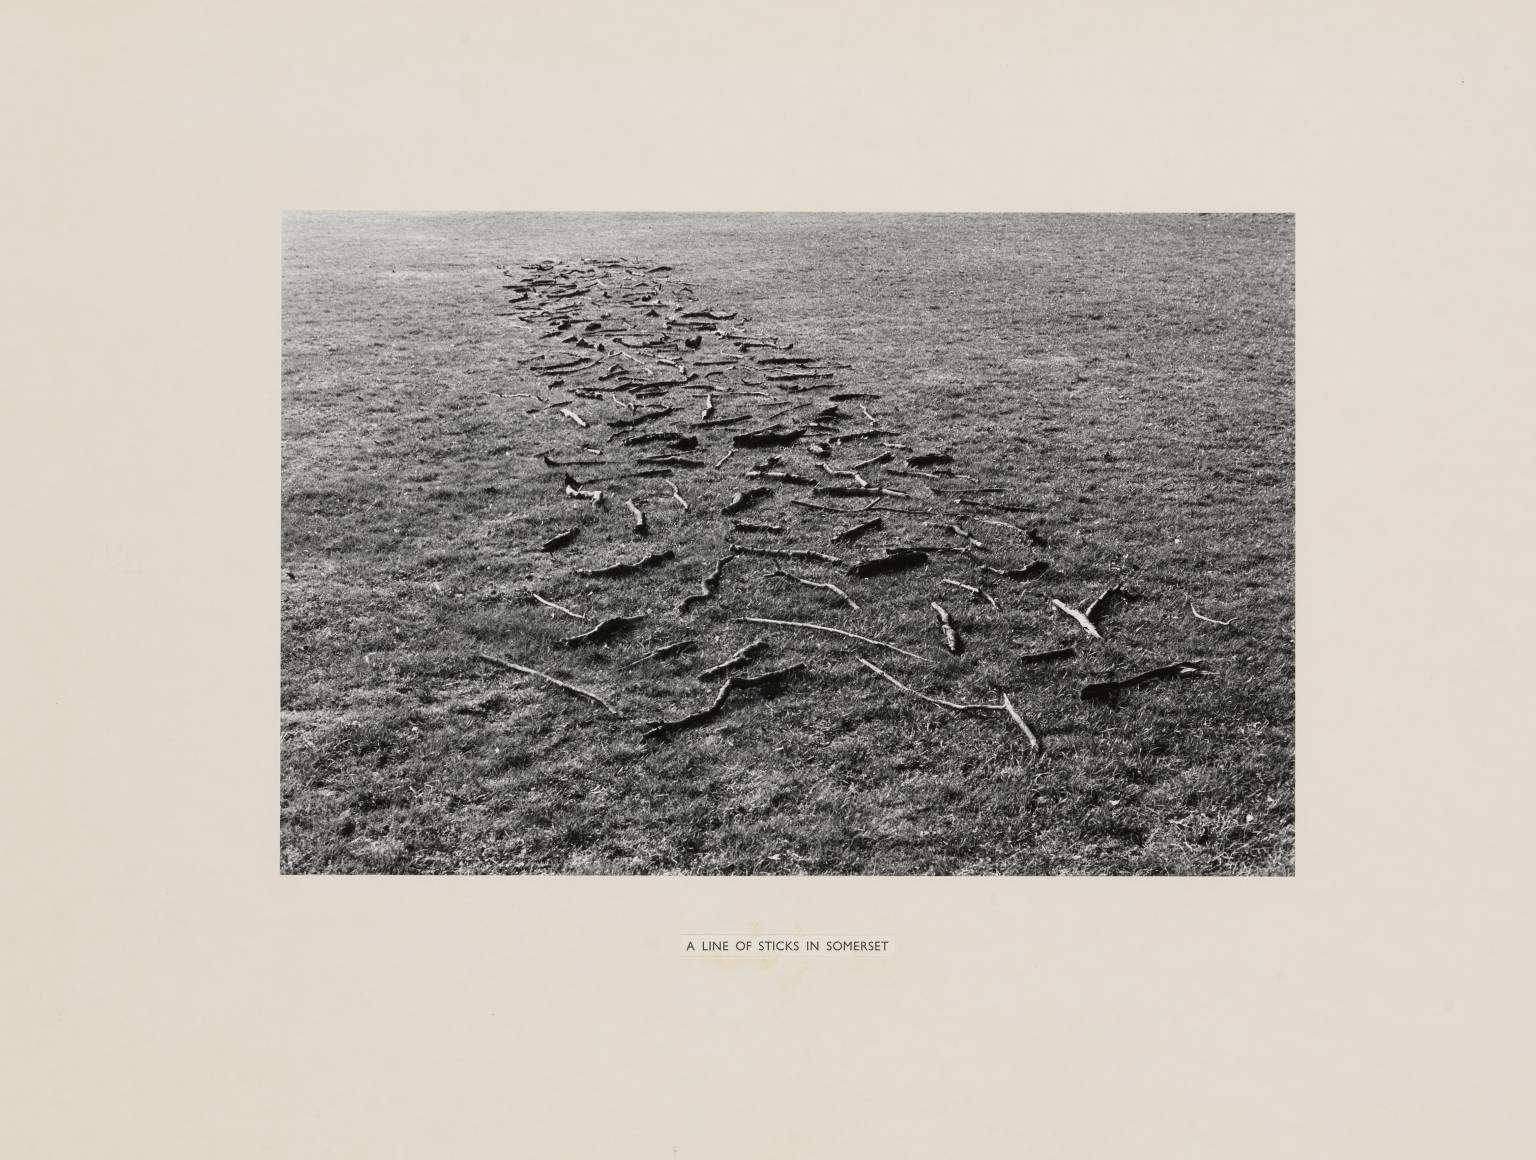 A Line of Sticks in Somerset 1974 Richard Long